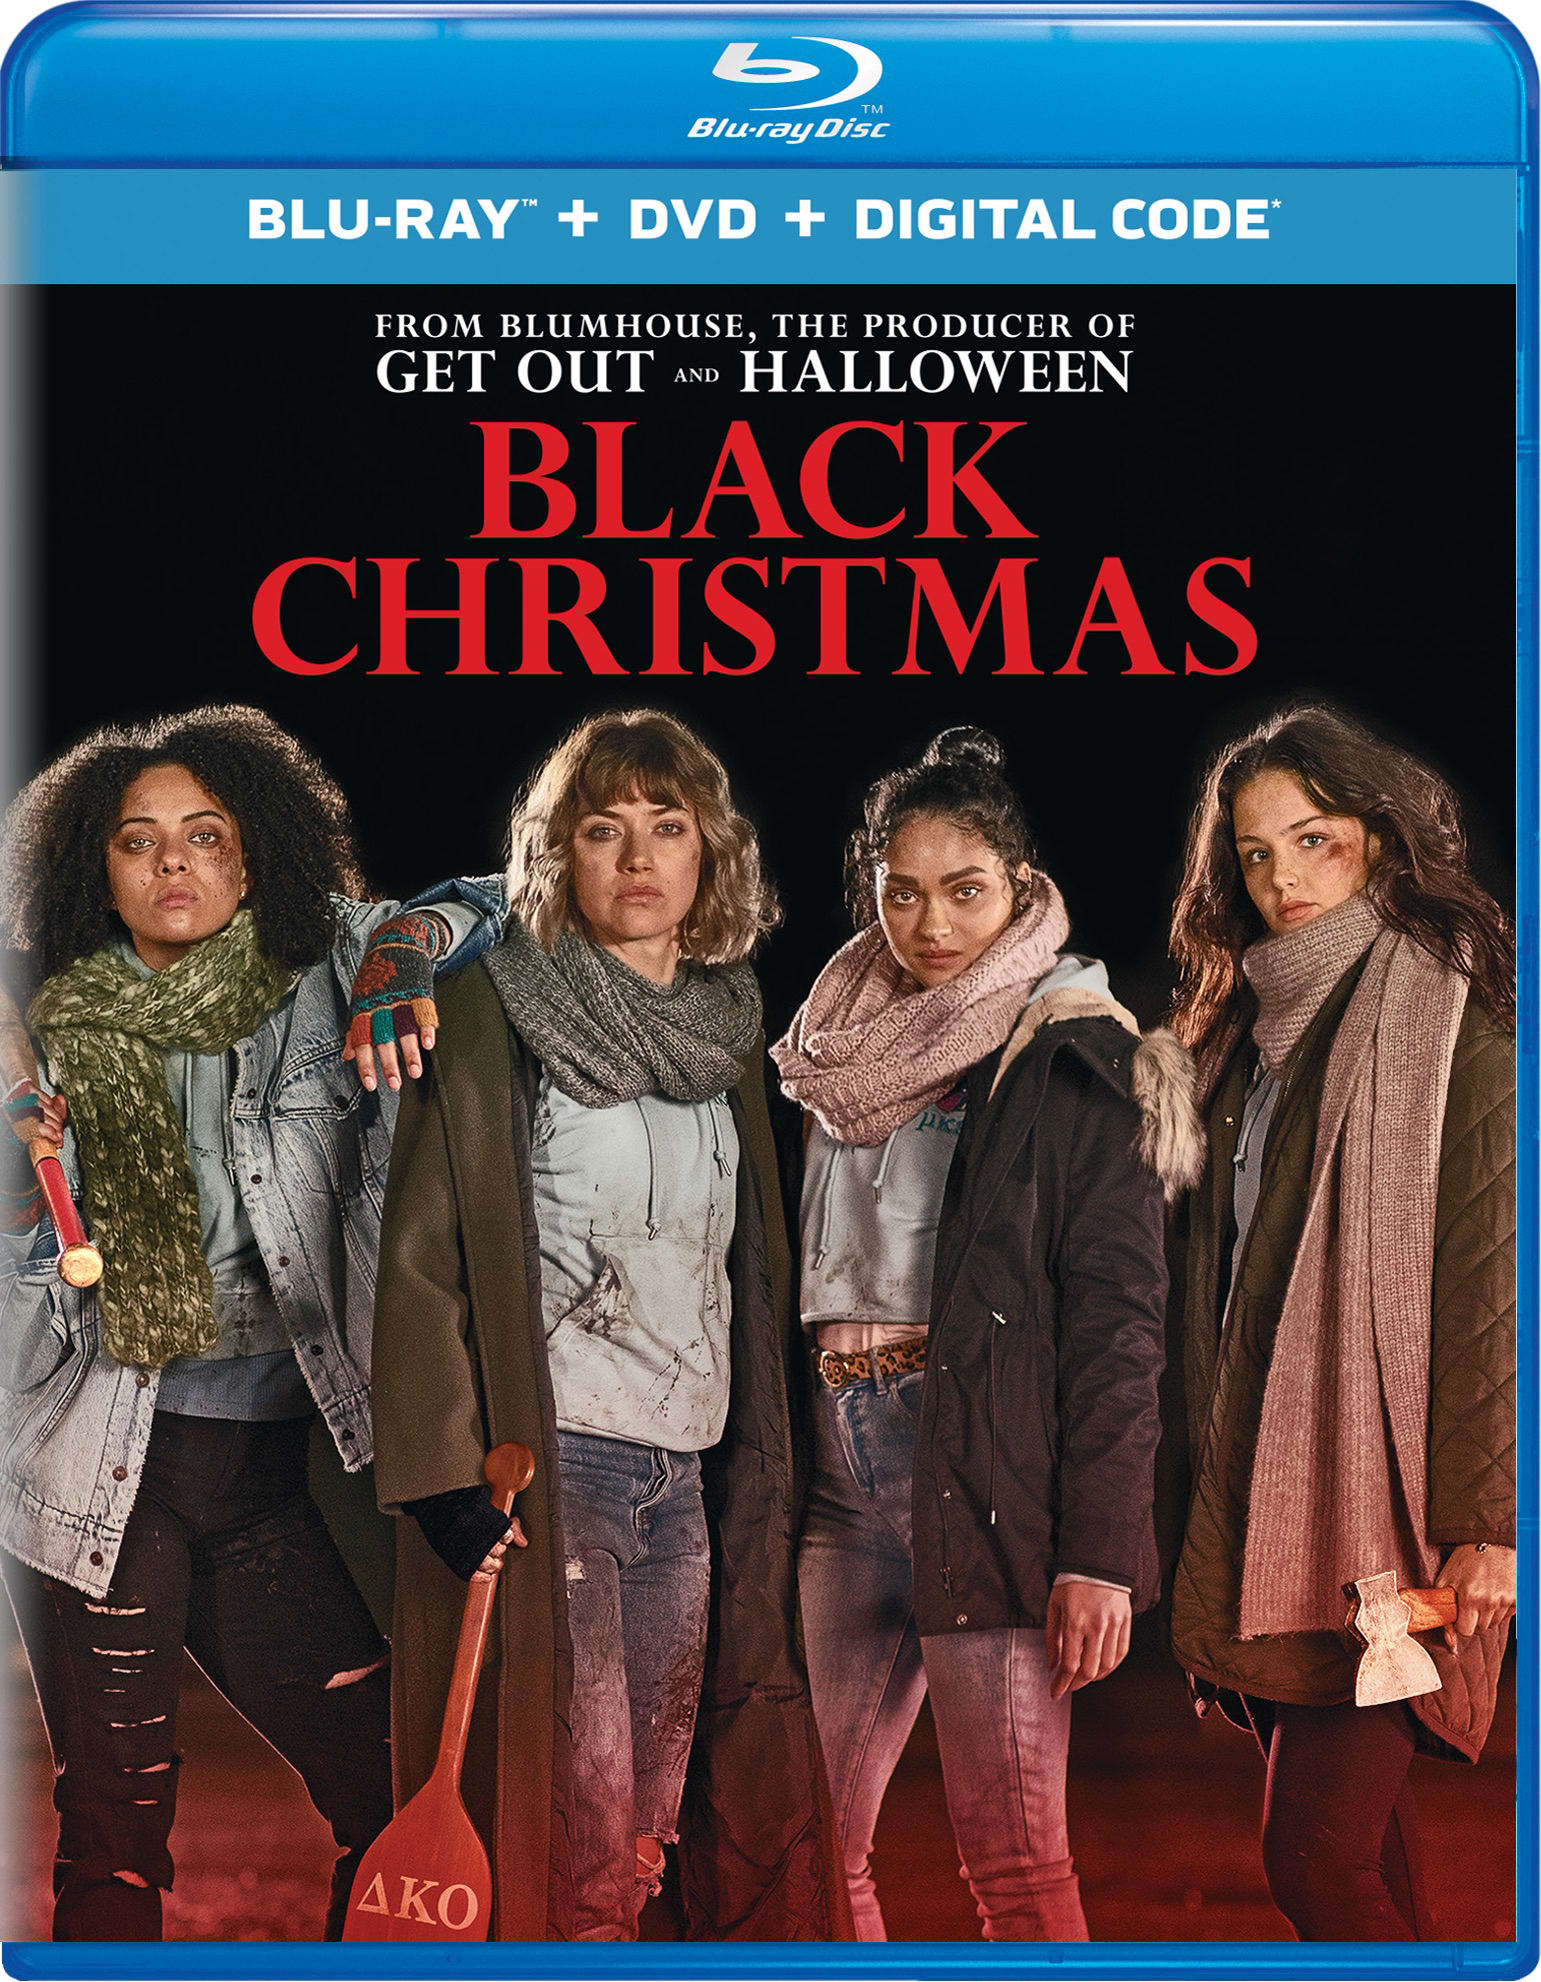 Black Christmas (DVD + Digital) [Blu-ray]